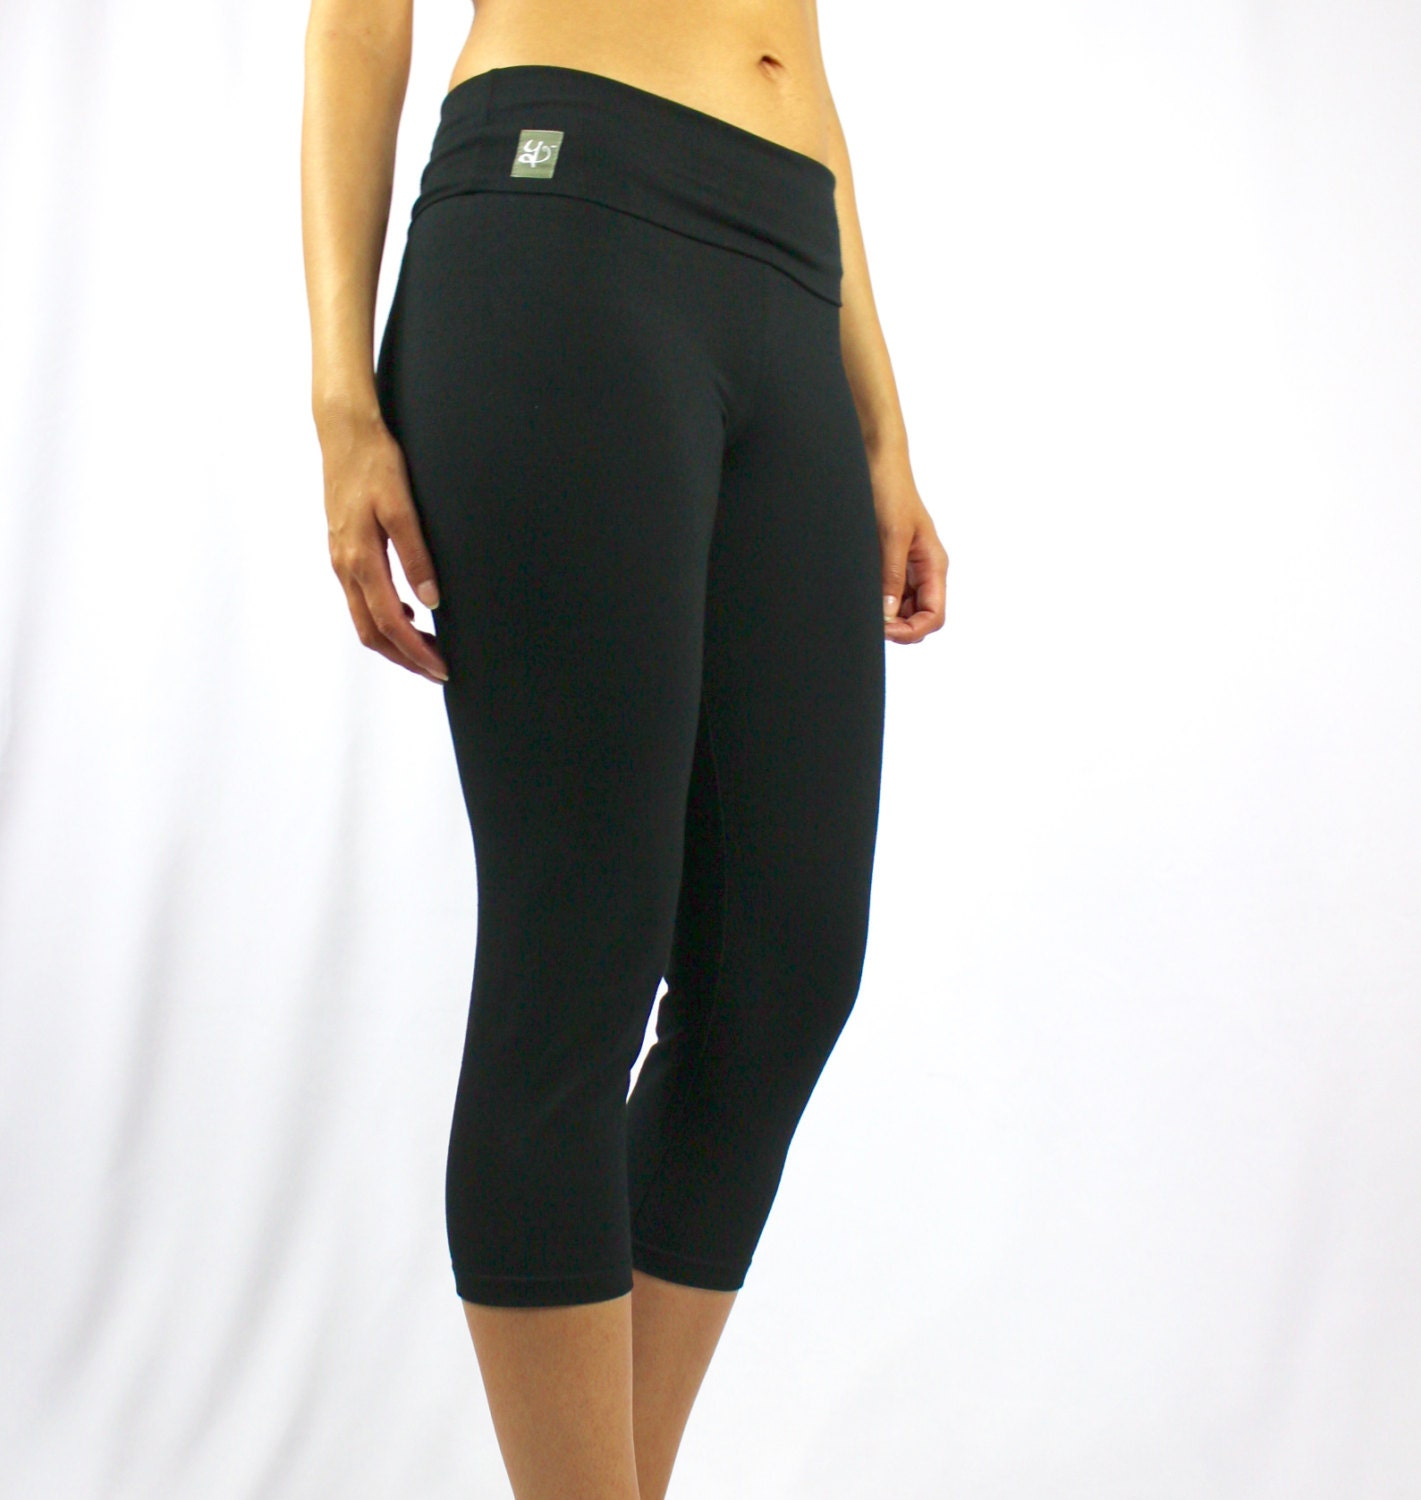 Find yoga pants cotton/spandex at ShopStyle. Shop the latest collection of yoga pants cotton/spandex from the most popular stores - all in one place.